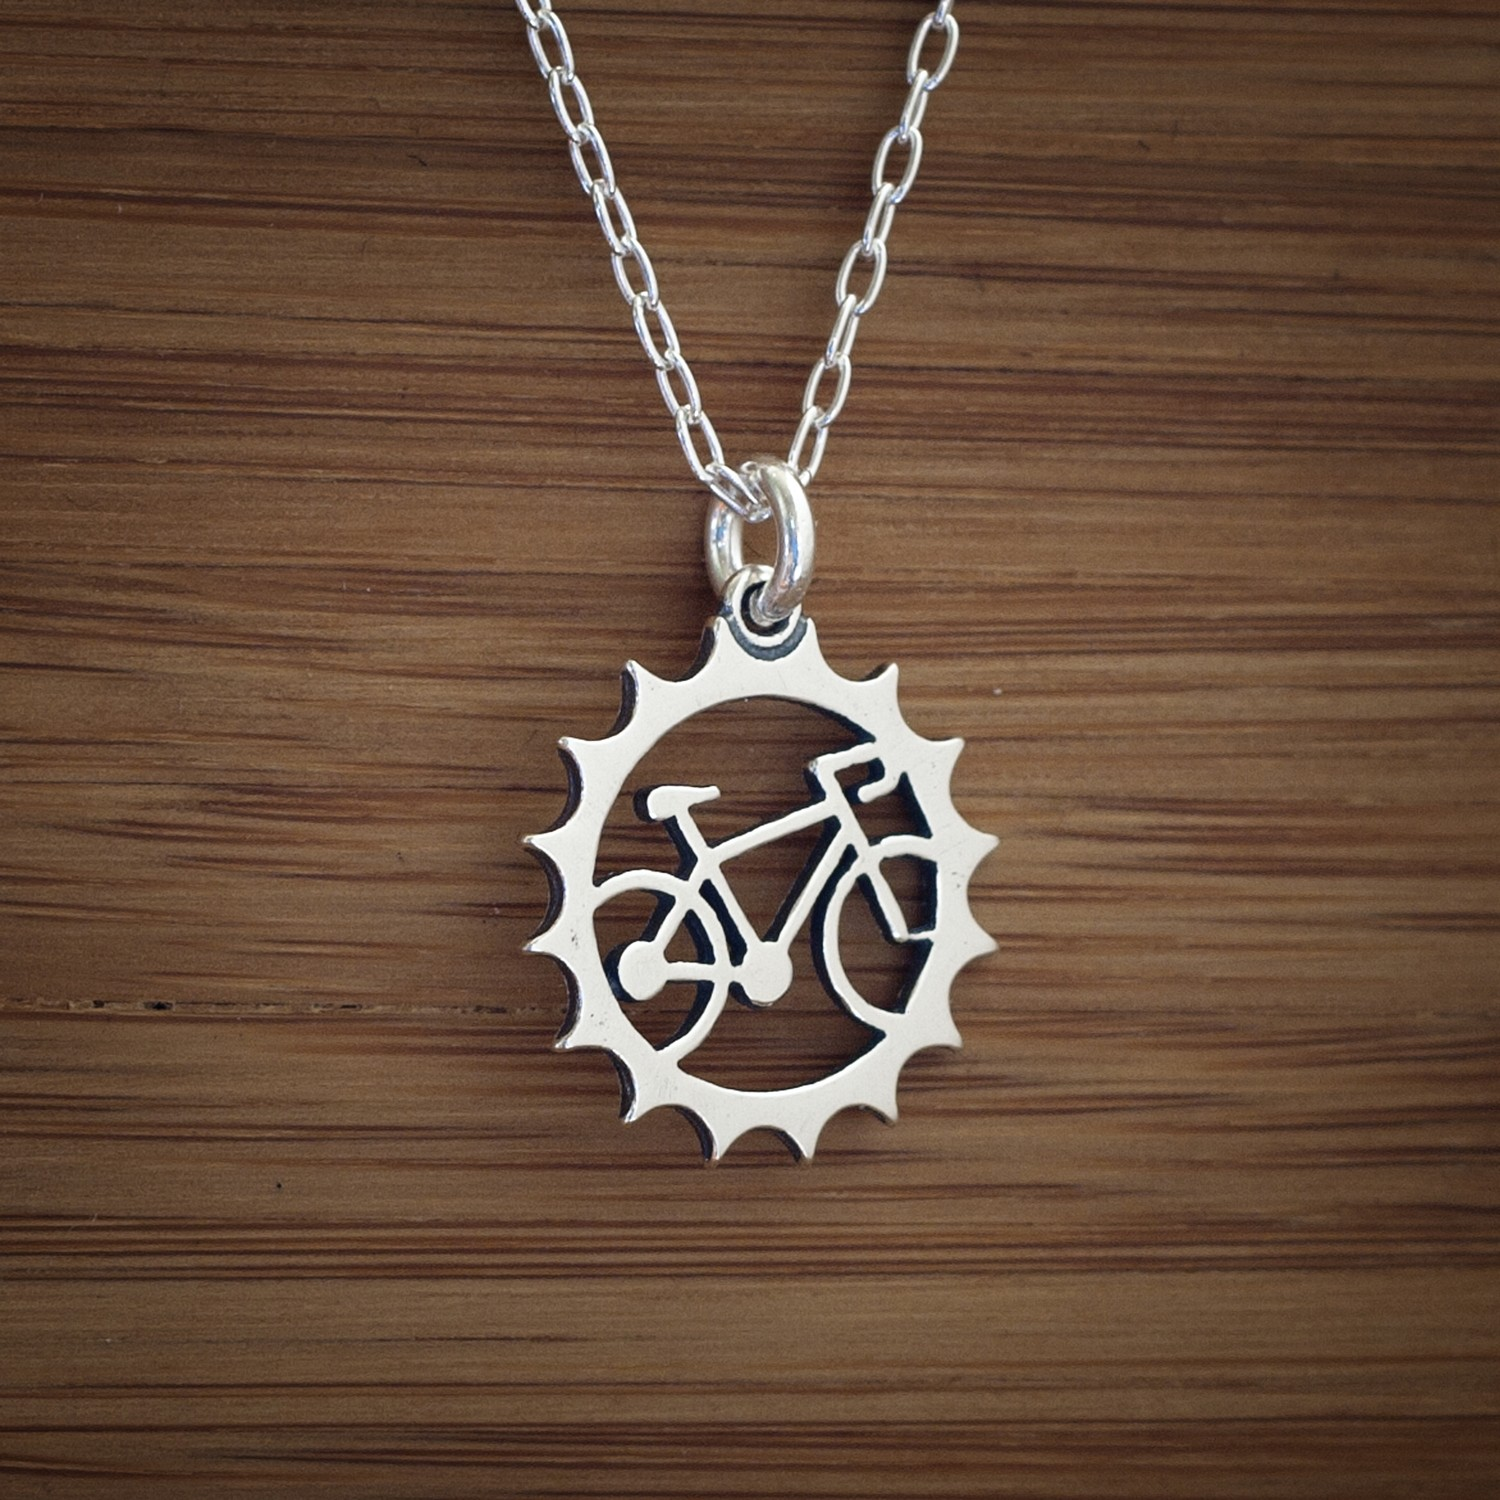 Sterling silver bicycle charm small double sided bike sterling silver bicycle charm small double sided bike chainring charm necklace or earrings aloadofball Gallery